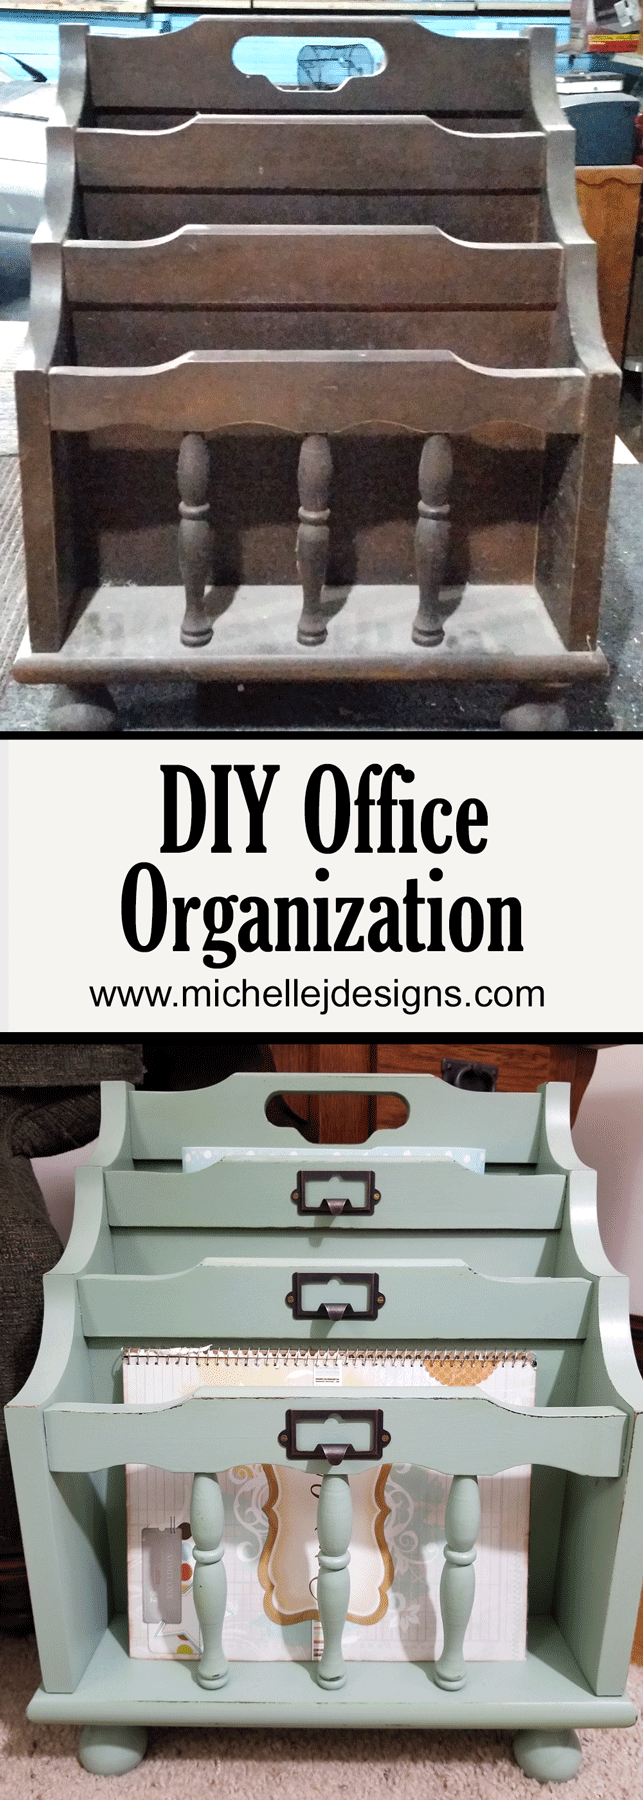 Office organization that is portable and ready to pick up and move where you are is awesome. I spend a lot of time working on the sofa so to have a DIY office organization station next to me is perfect! - www.michellejdesigns.com